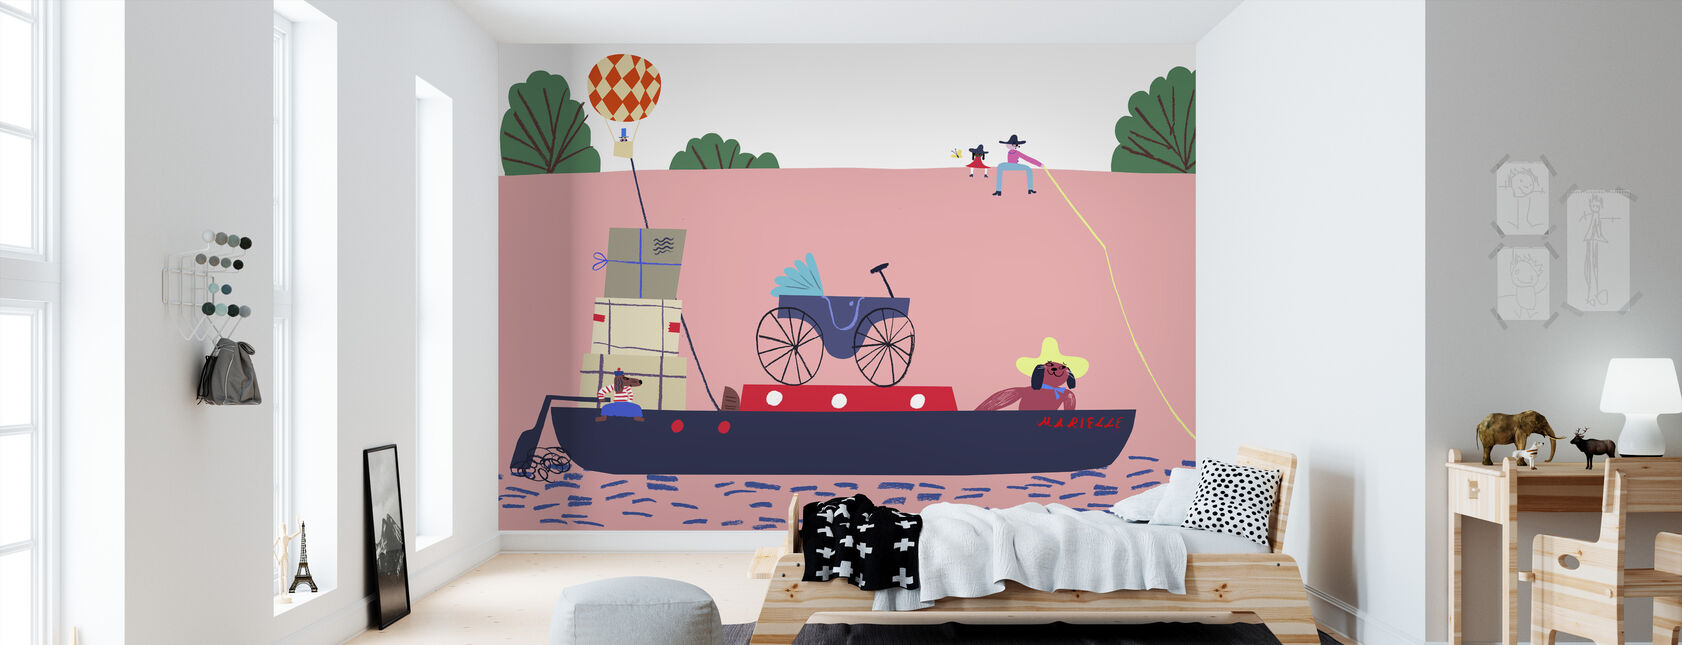 Boot en de Ballon - Behang - Kinderkamer